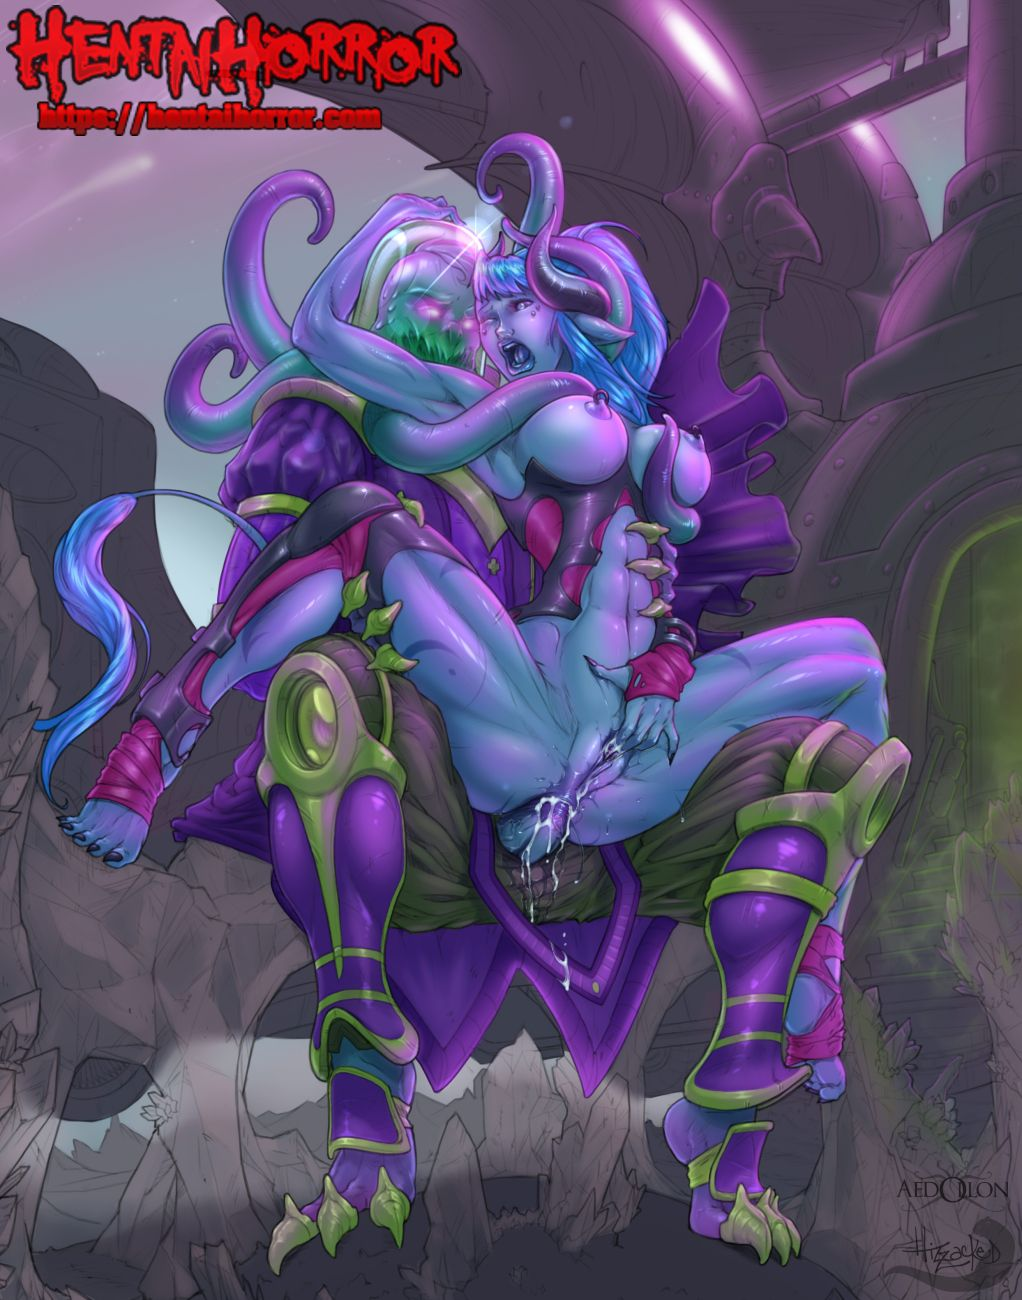 NSFW gaming porn art of busty oppai hentai slut with big tits getting skull fucked by a monster cock.